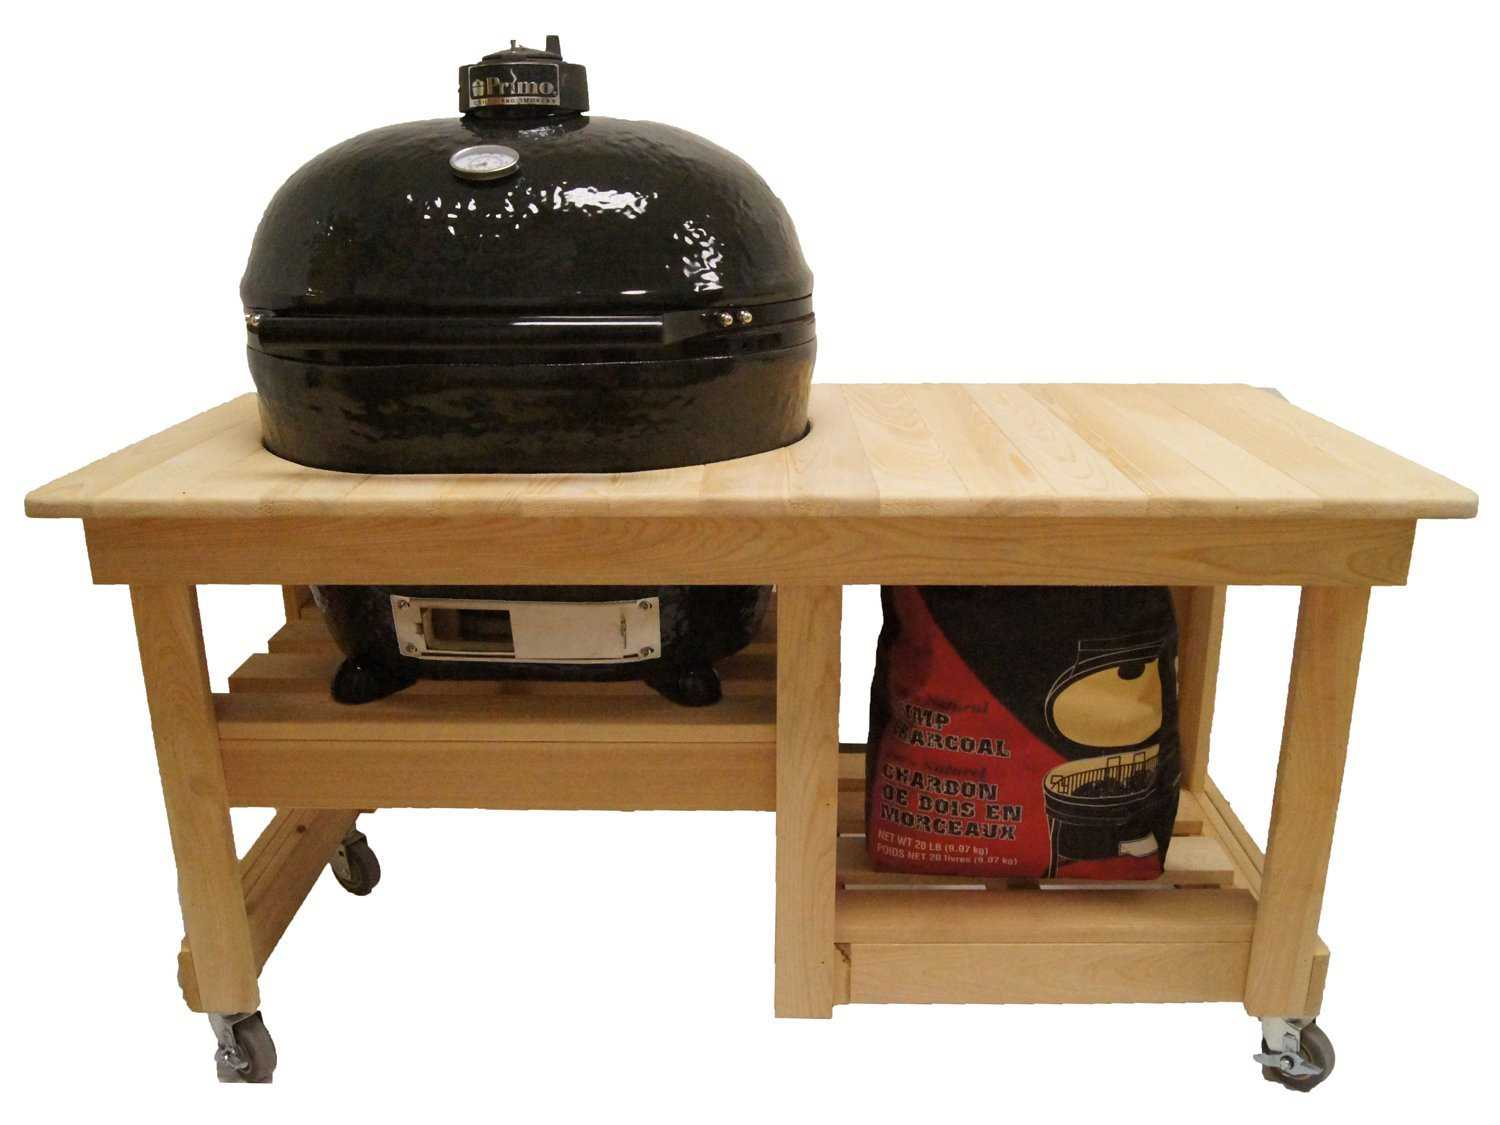 Primo Grills Jack Daniels Oval 400 XL in Cypress Table : PMXLJDCYP1zm from luxedecor.com size 1500 x 1125 jpeg 69kB